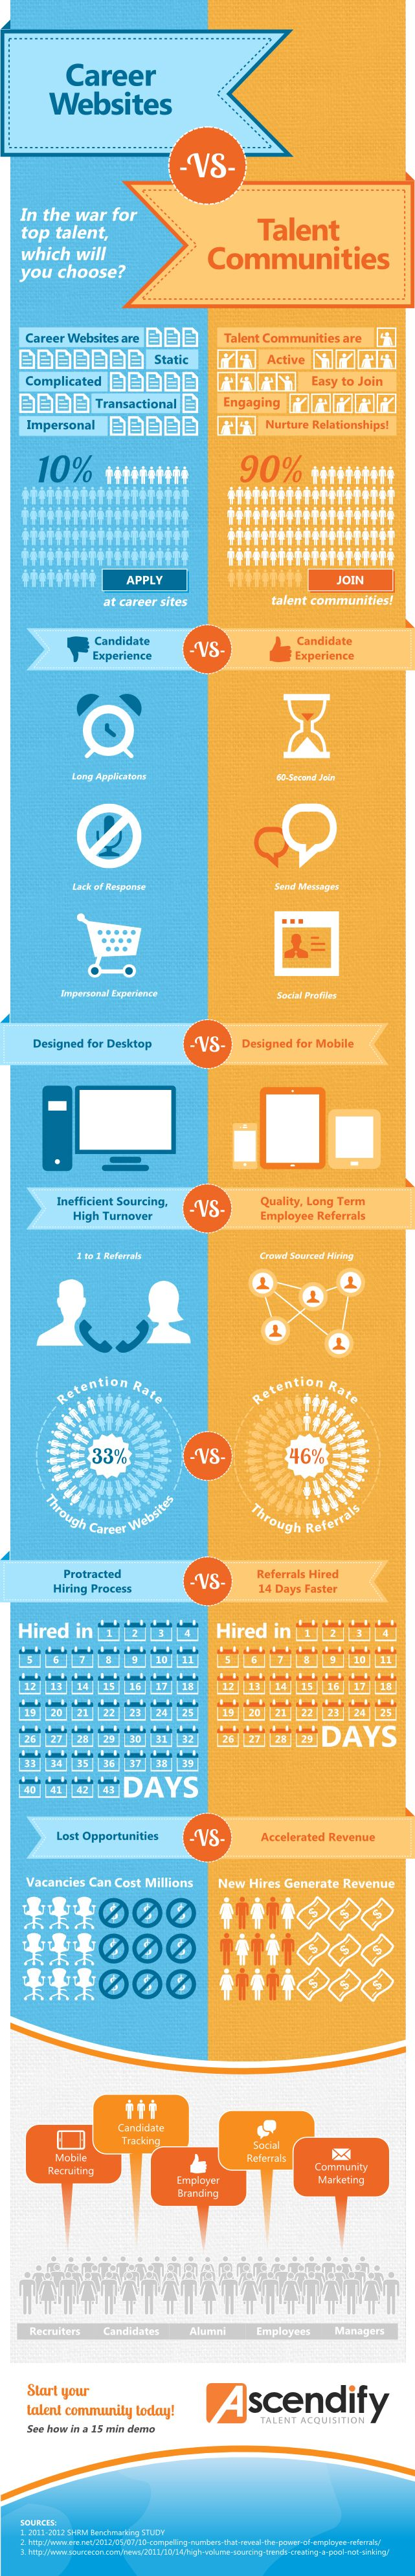 Career Websites vs. Talent Communities. Career websites are leaking top talent! Did you know that only 1 out of 10 candidates take the time to apply? 90% are turned away by the long application process, impersonal experience, or simply because they don't see a job opening that's right for them. But what if you could capture those passive candidates?